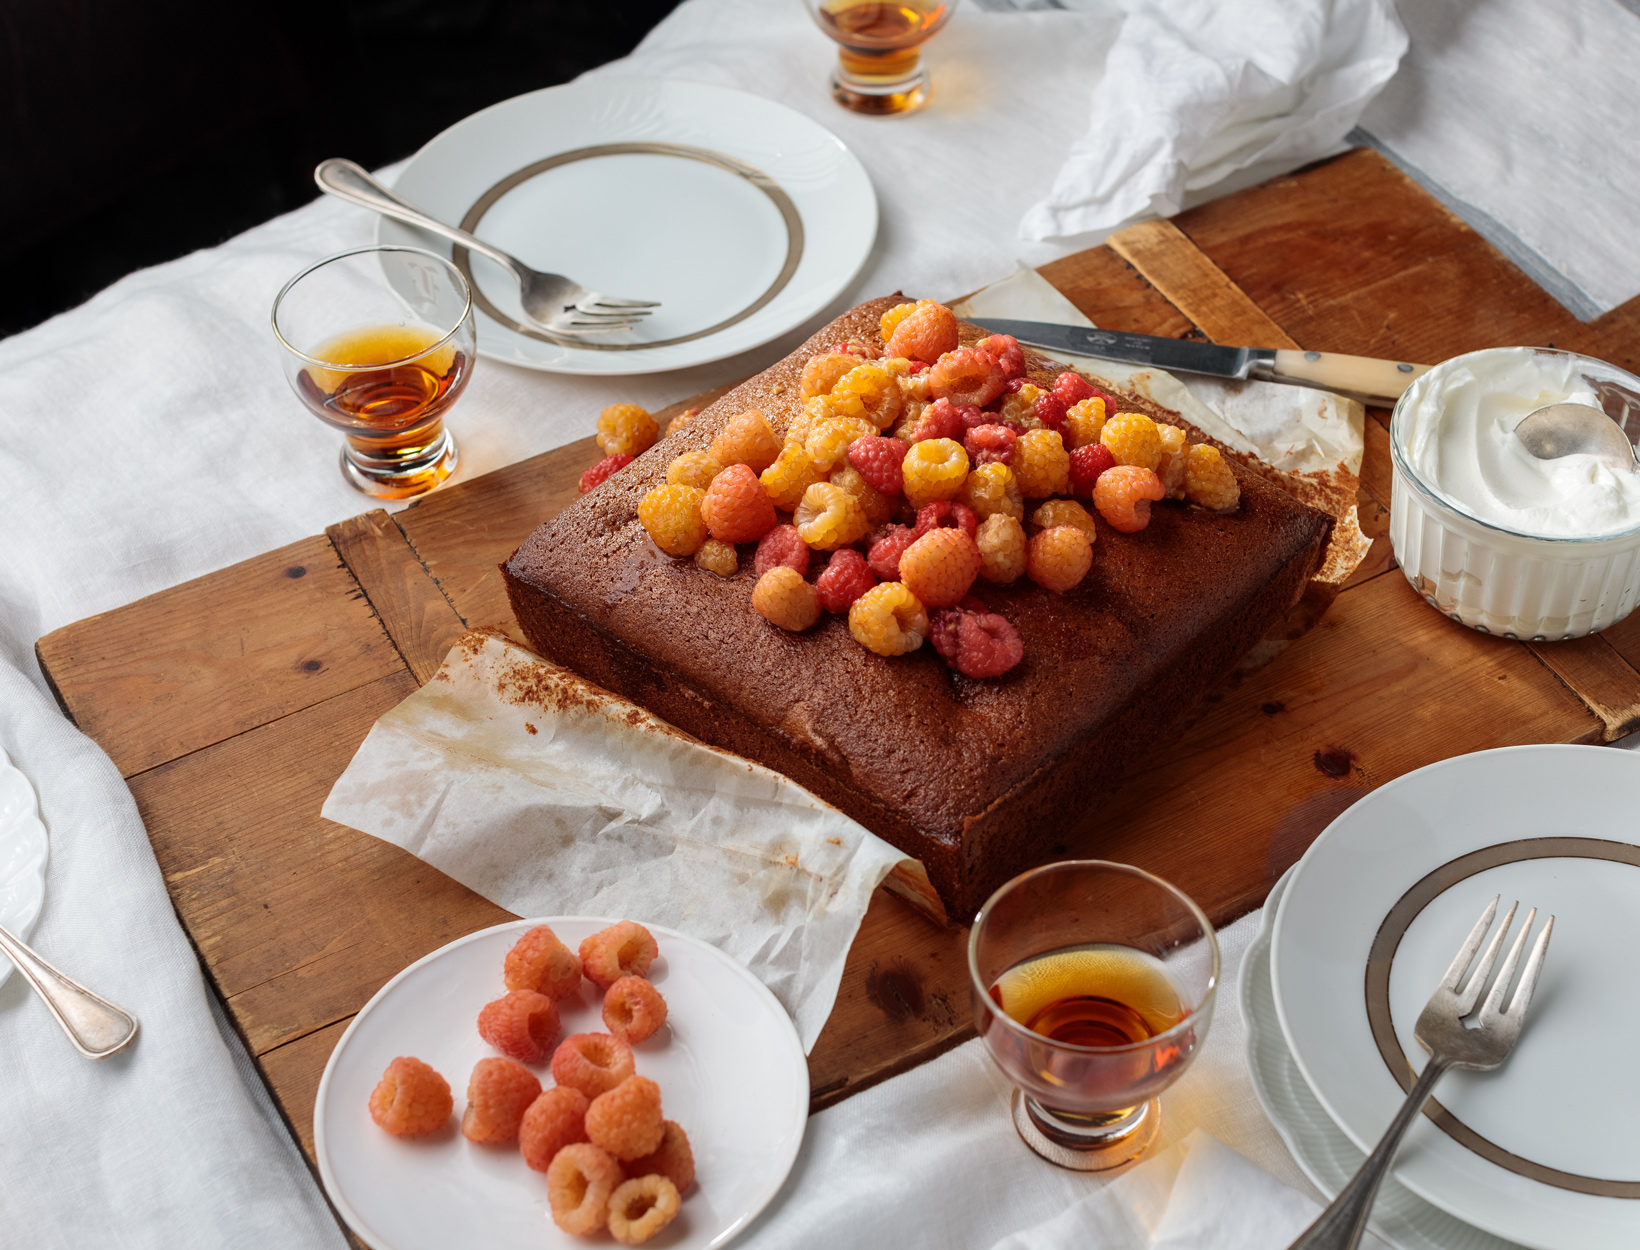 Olive Oil Cake with Fresh Berries